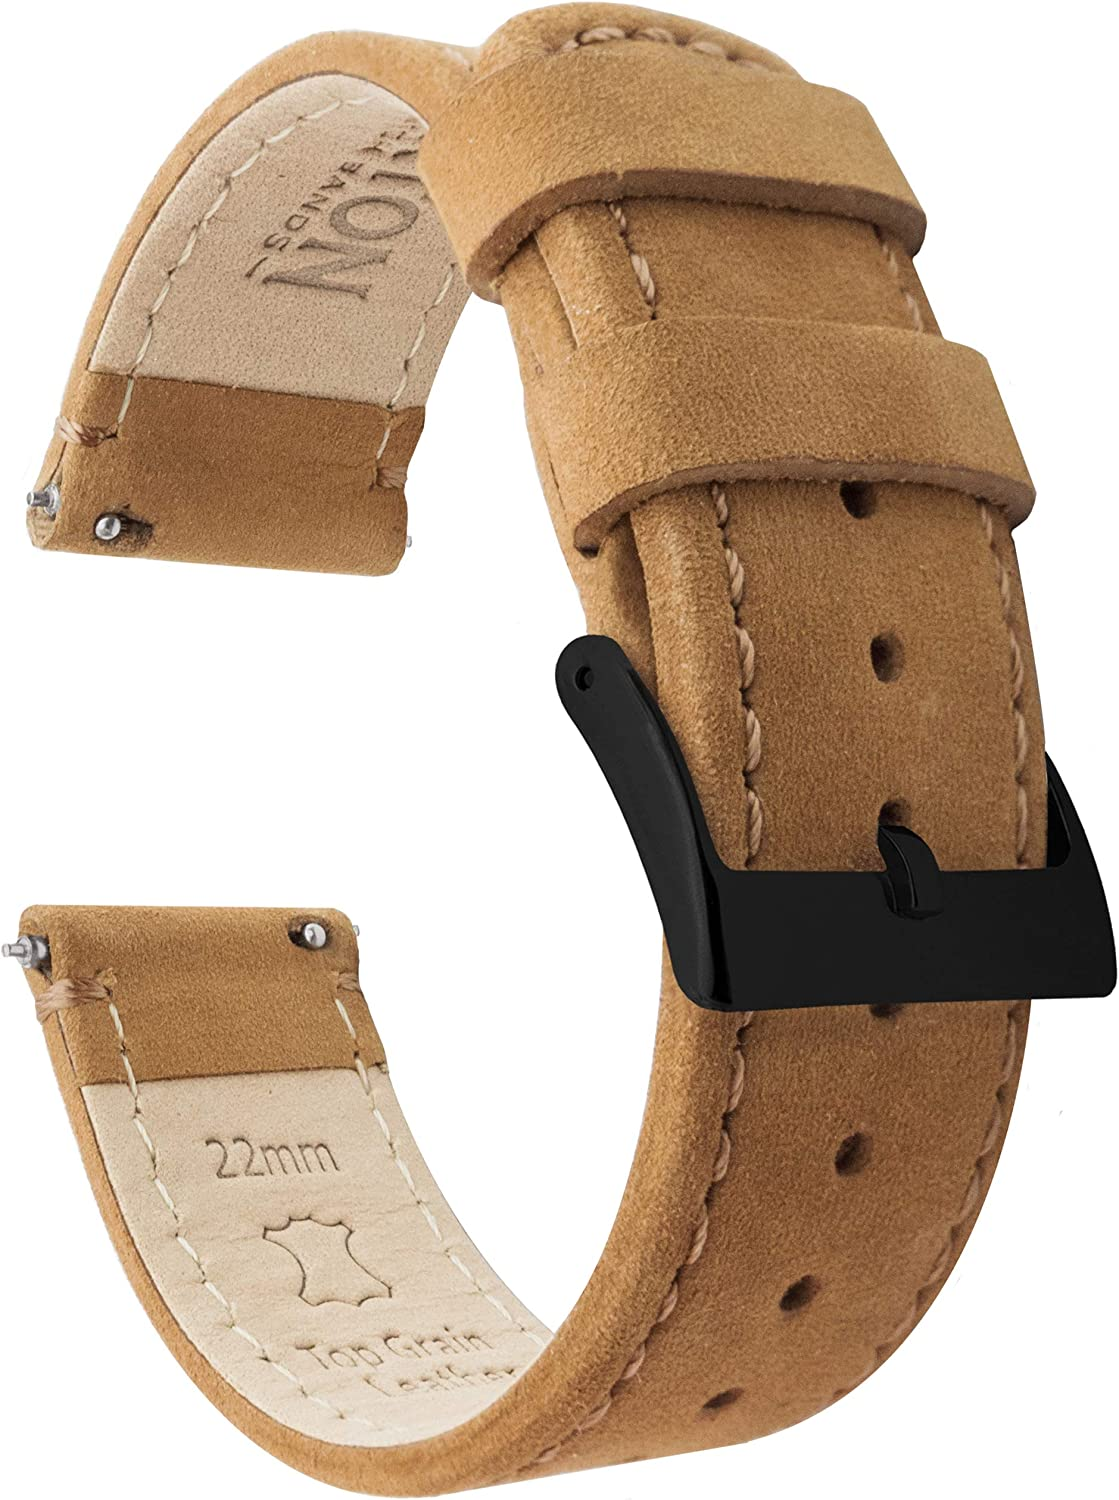 BARTON Watch Bands - quality Max 58% OFF assurance Top Grain Strap Release Bla Leather Quick